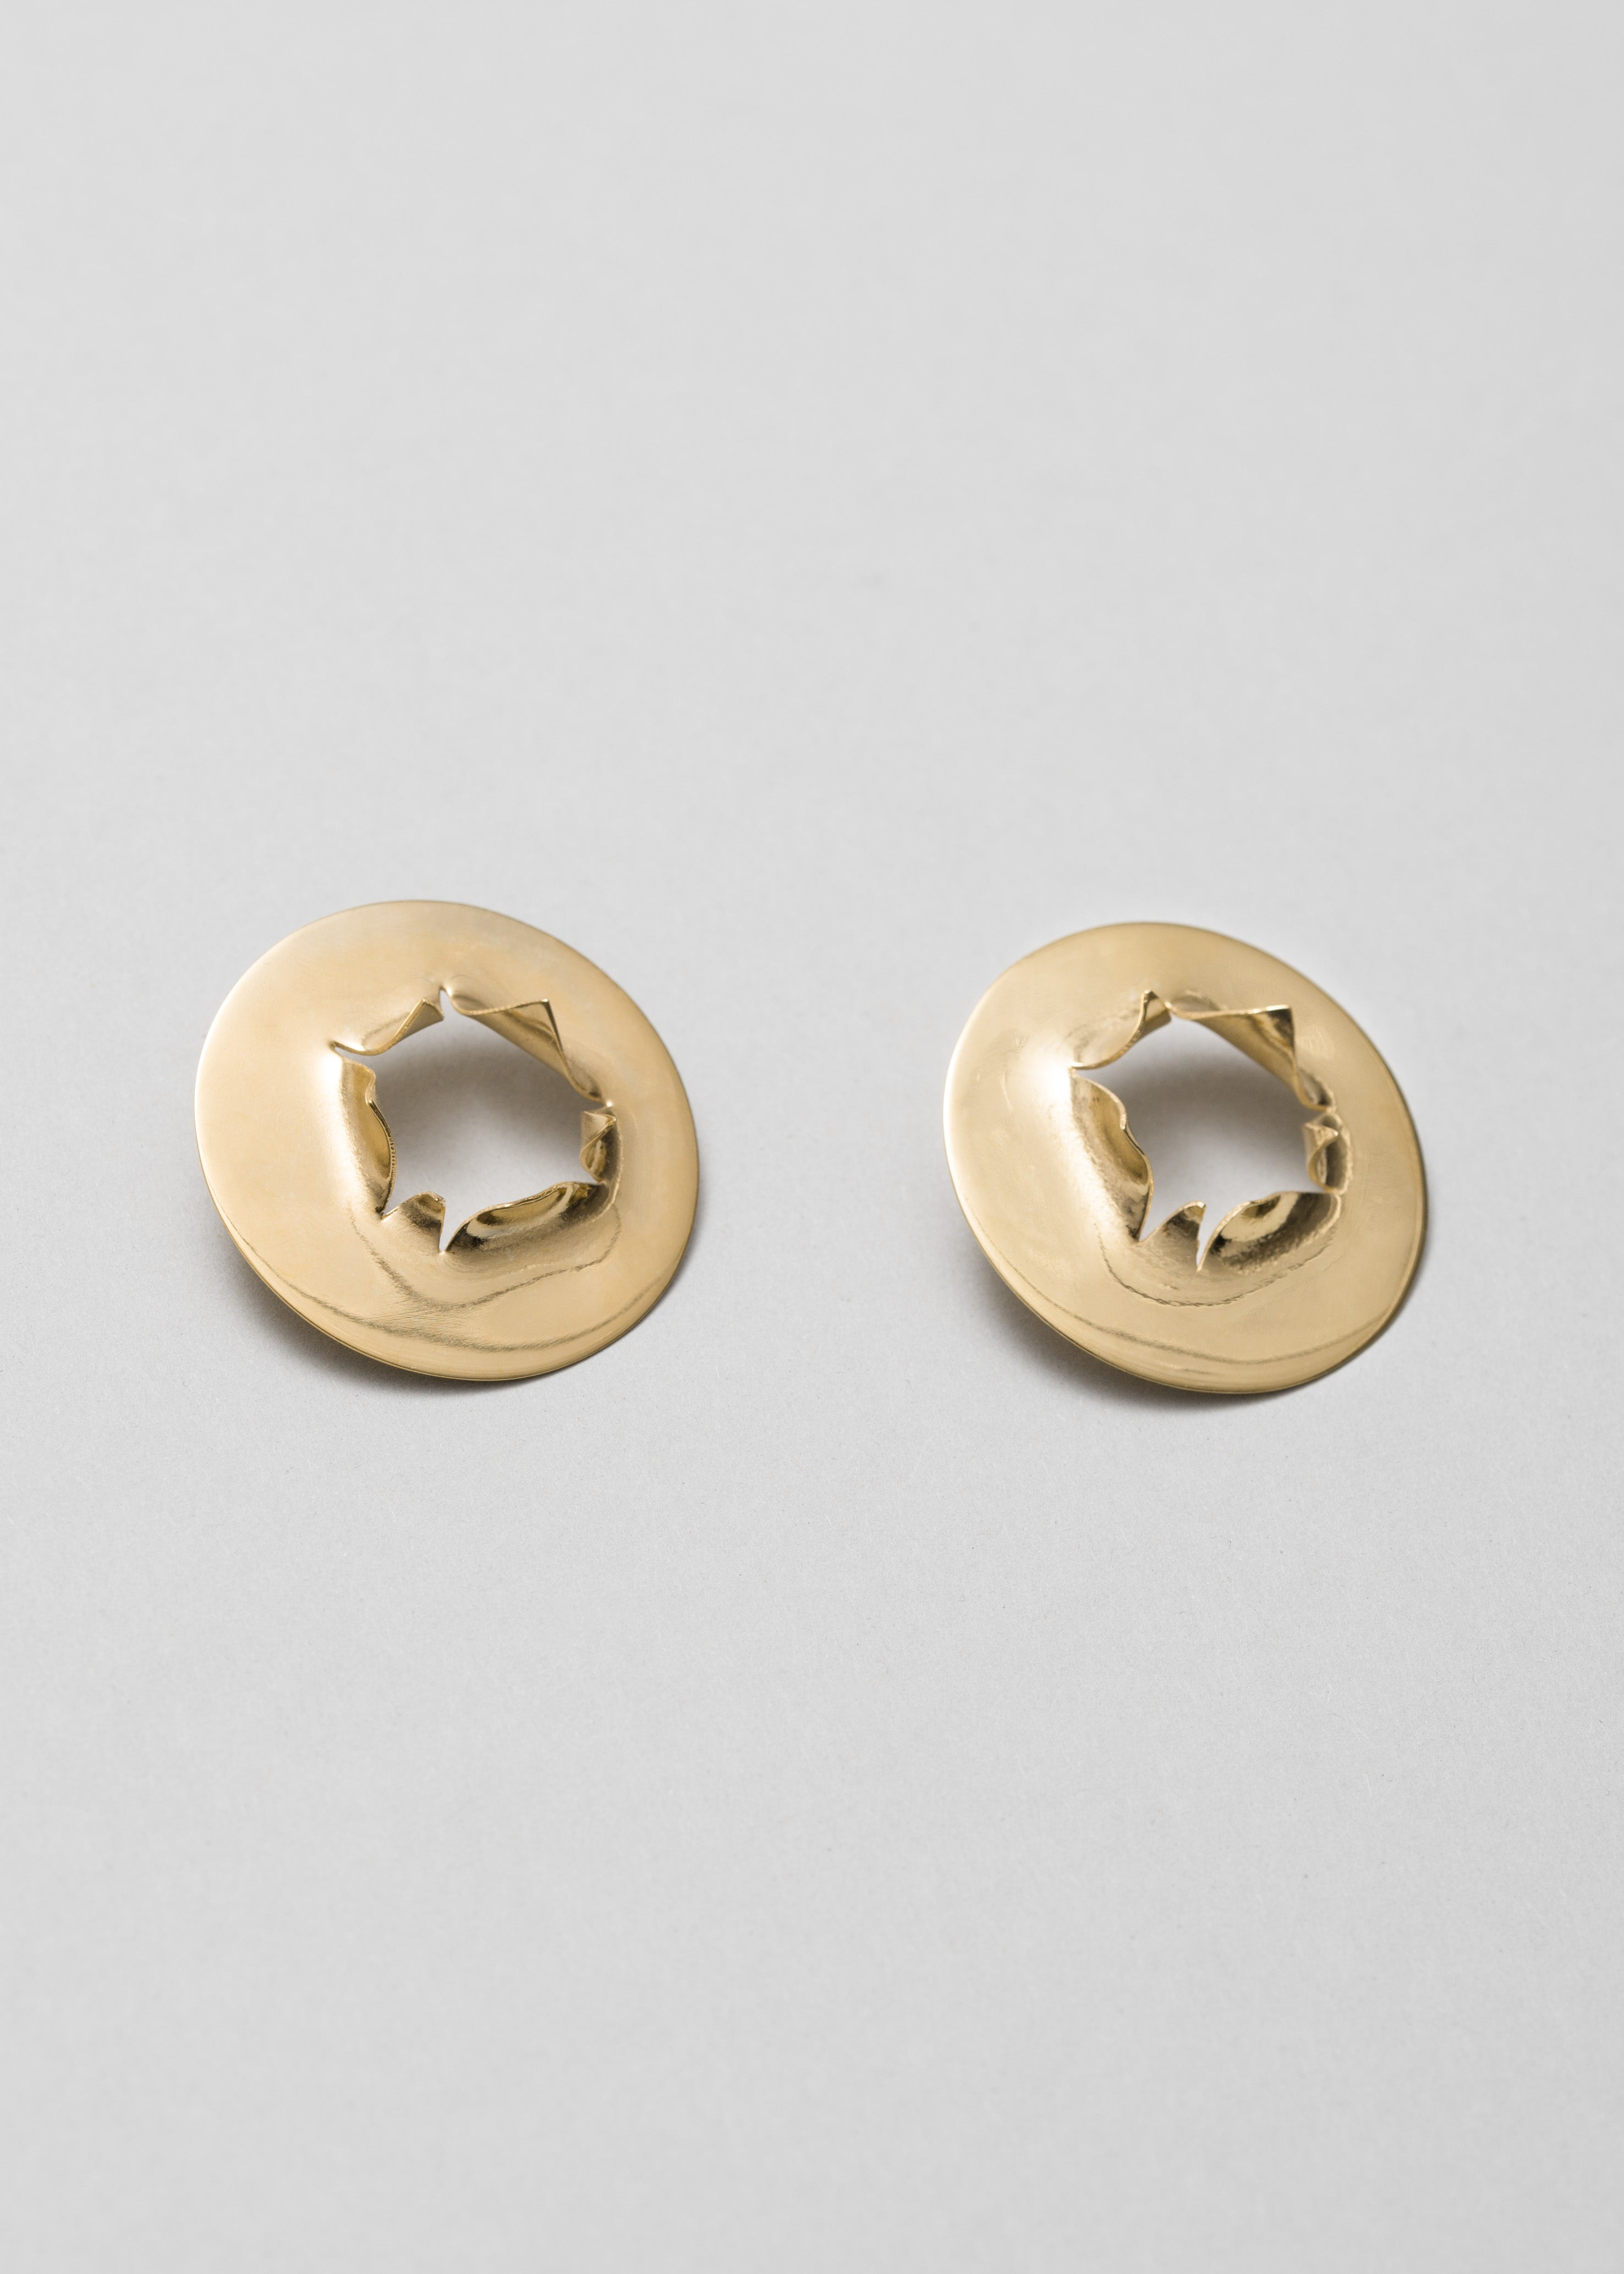 Bullet hole earrings